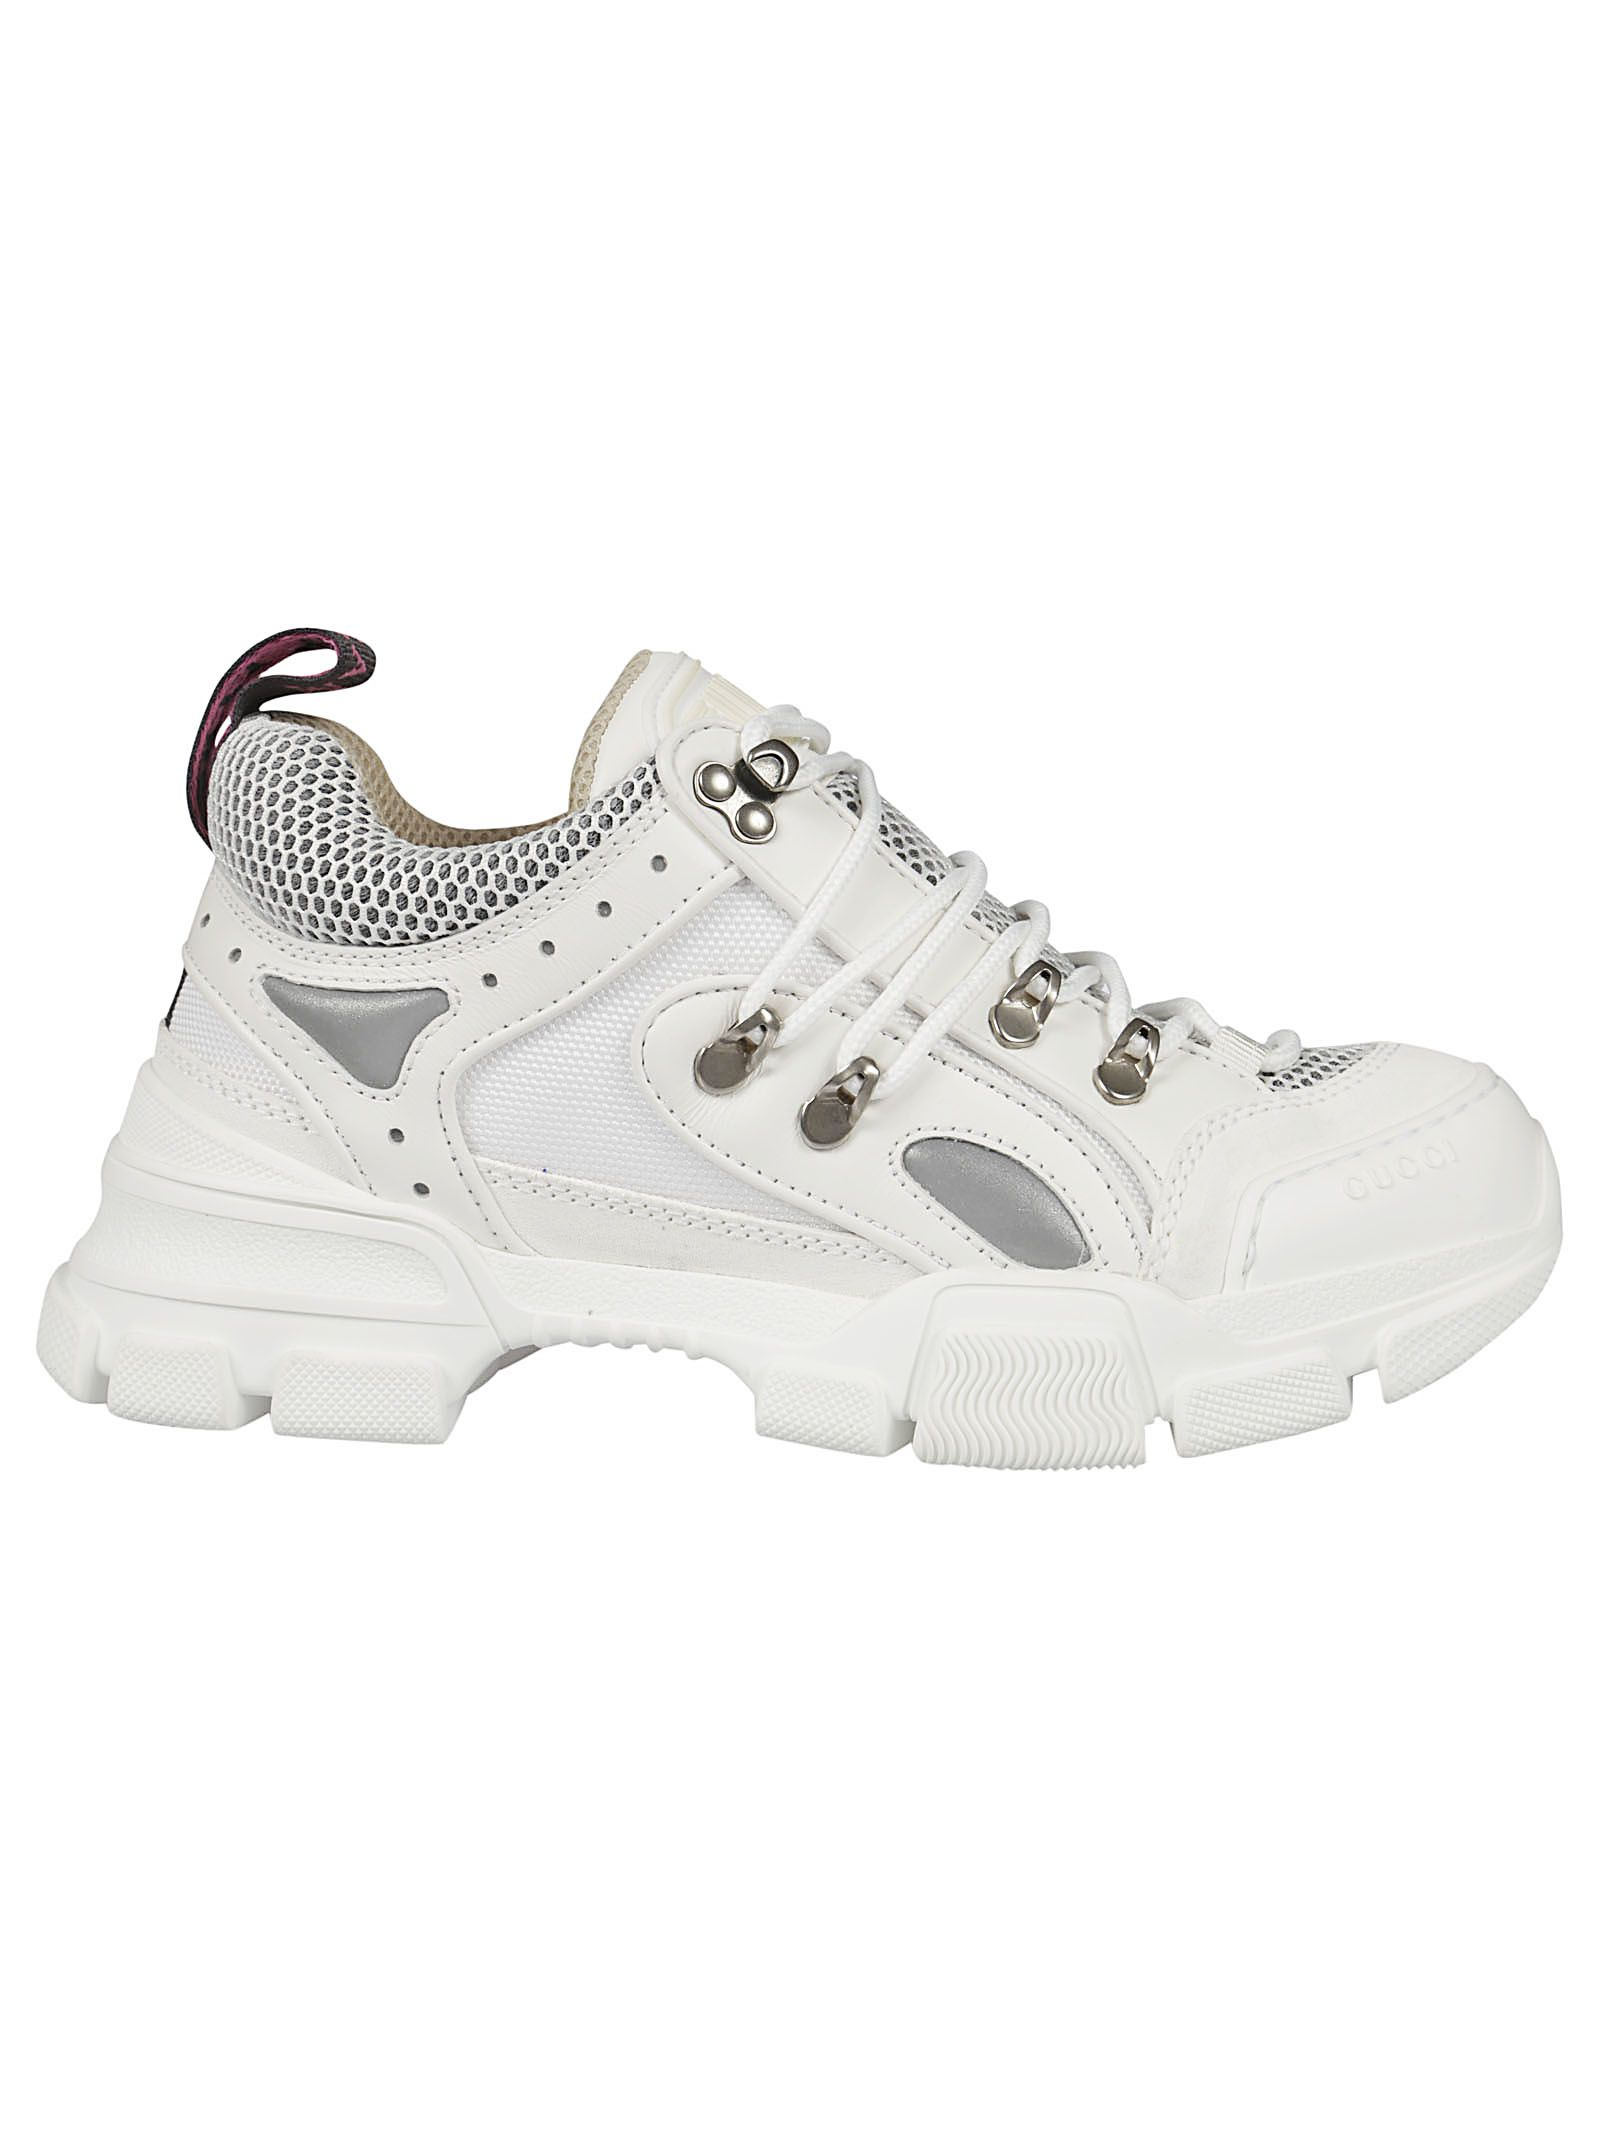 gucci -  Flashtrek Sneakers